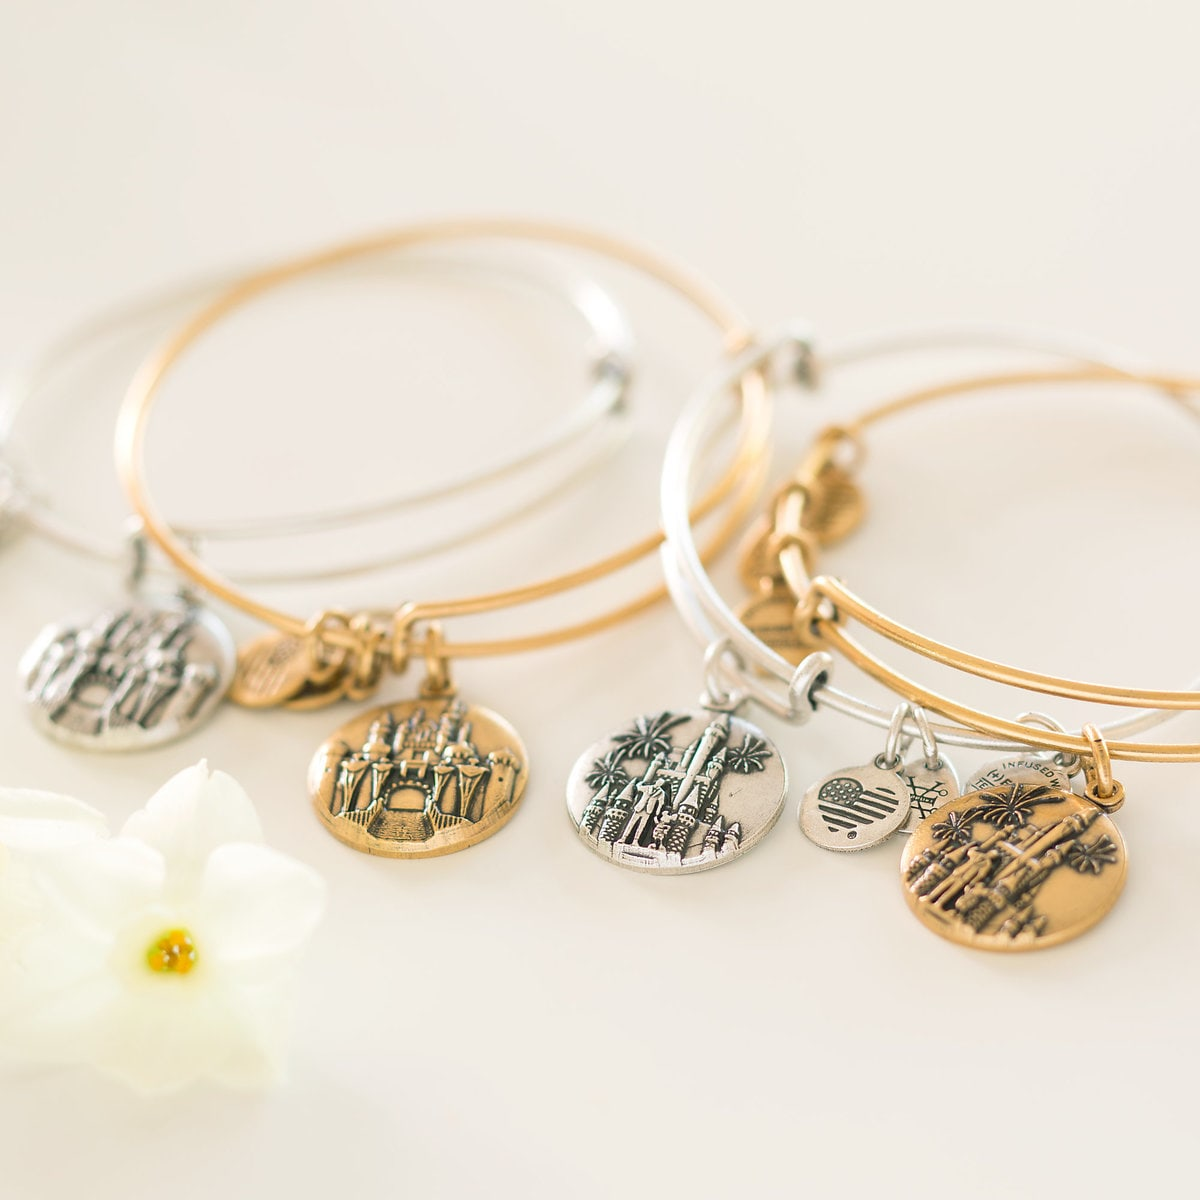 637a07953 Product Image of Cinderella Castle with Walt Disney and Mickey Mouse Bangle  by Alex and Ani